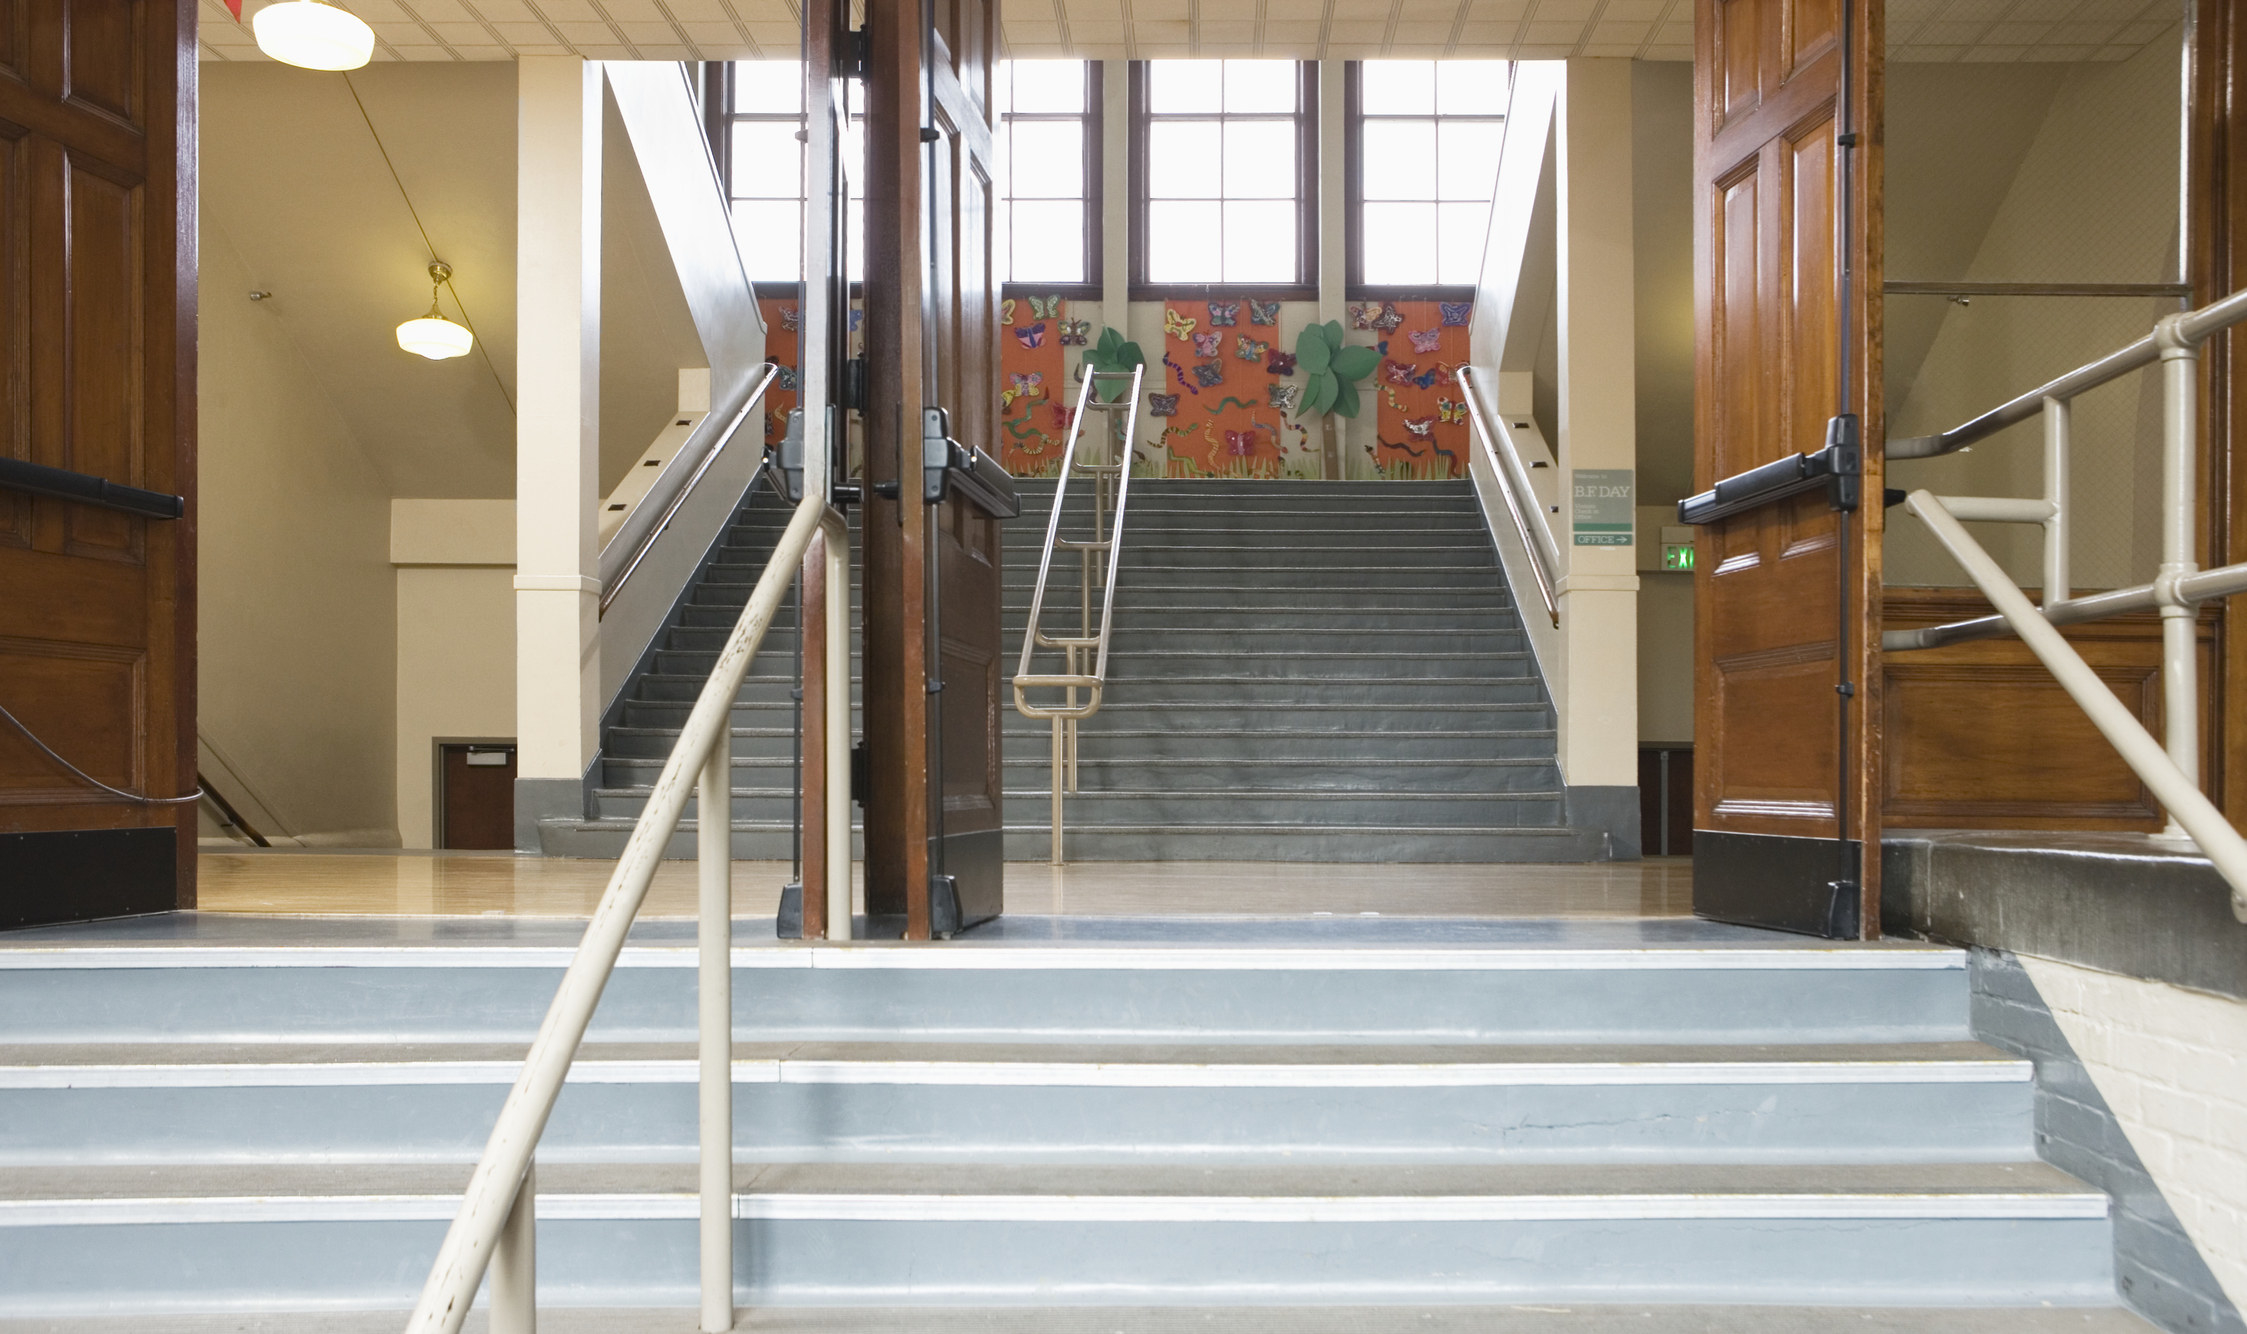 Stock photo of a staircase at a school